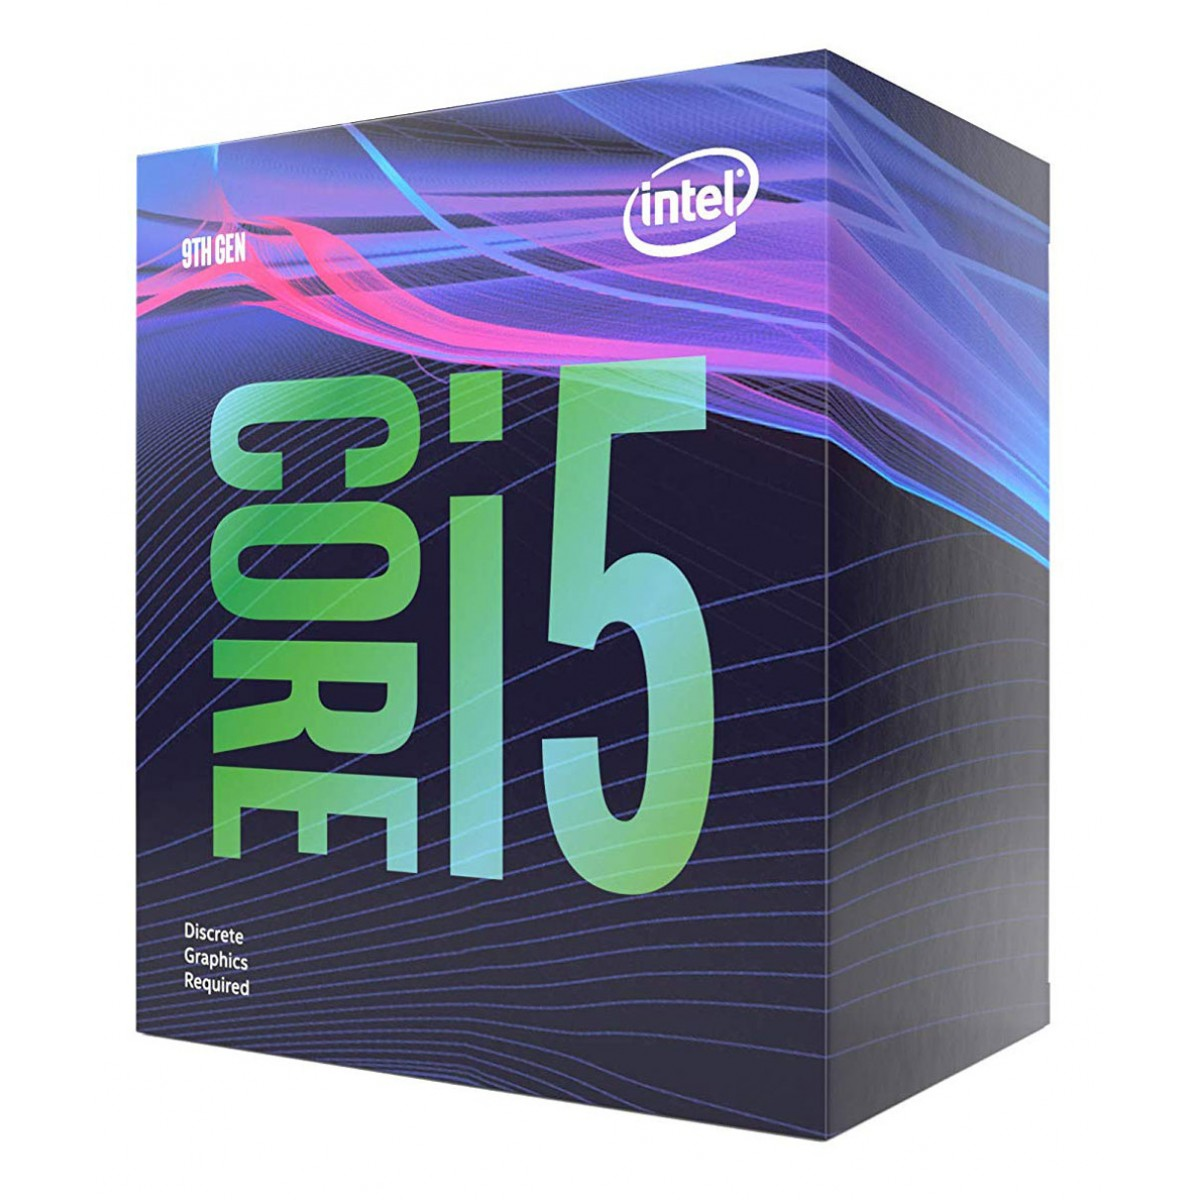 Intel Core i5 9400F Processor 9th Gen